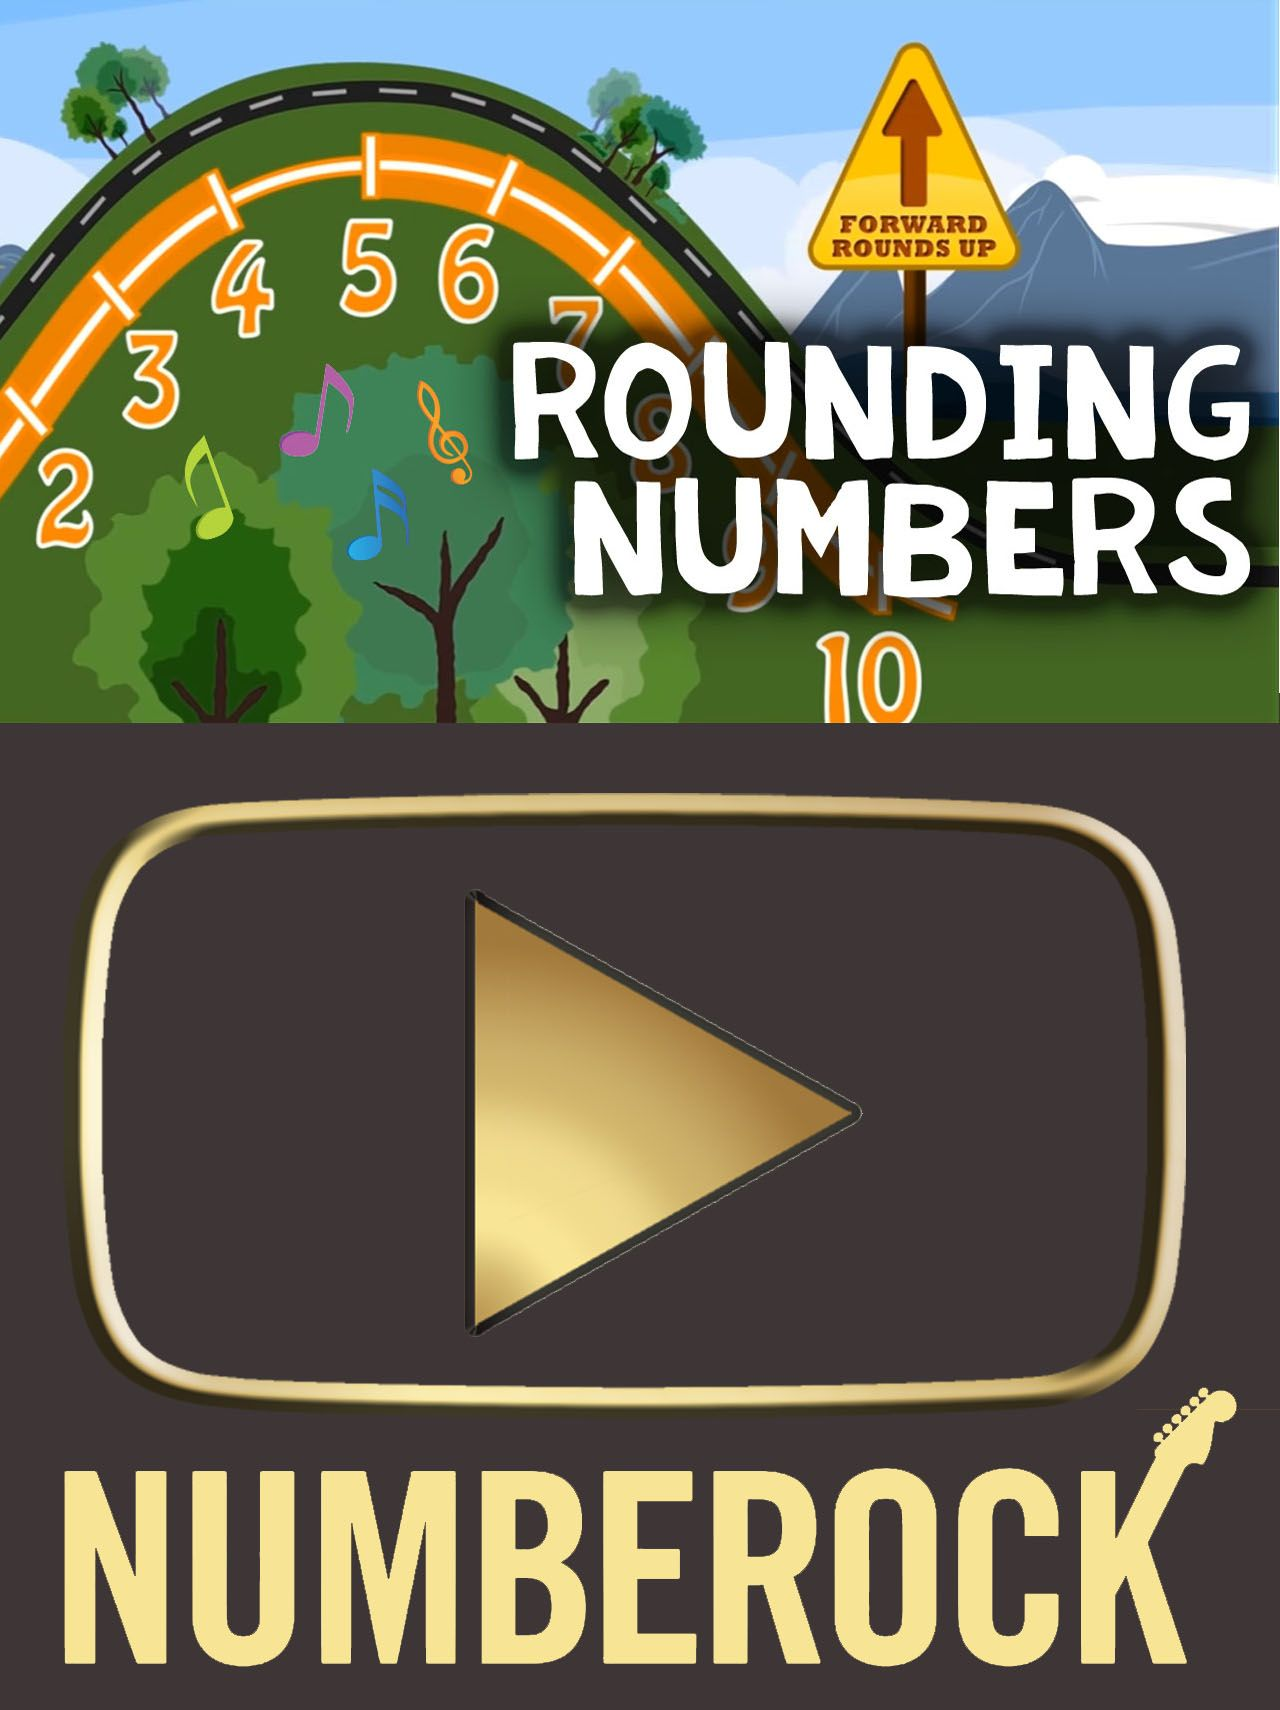 Rounding Numbers Song Amp Video Activities Worksheets Game Amp More